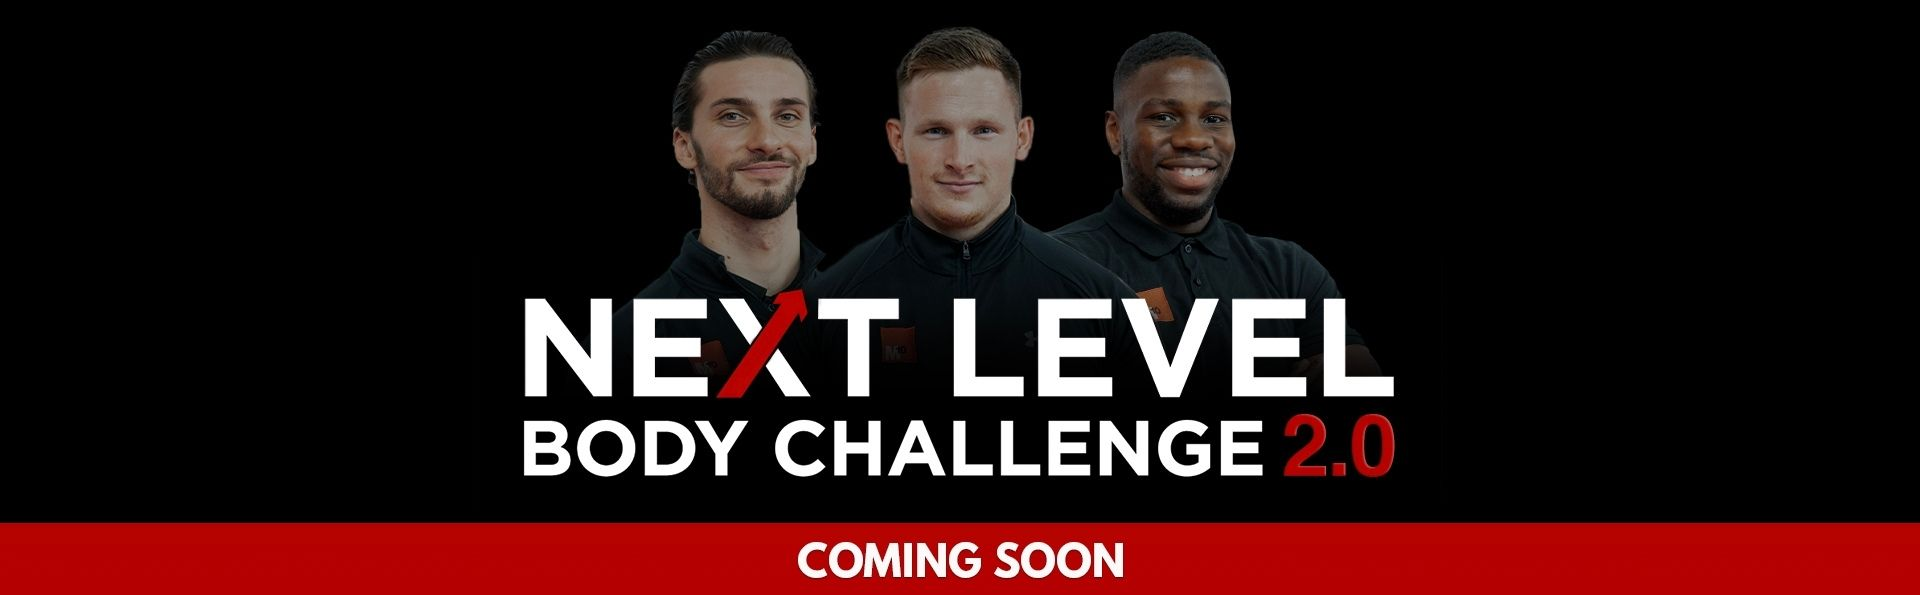 M10 Next Level Body Challenge